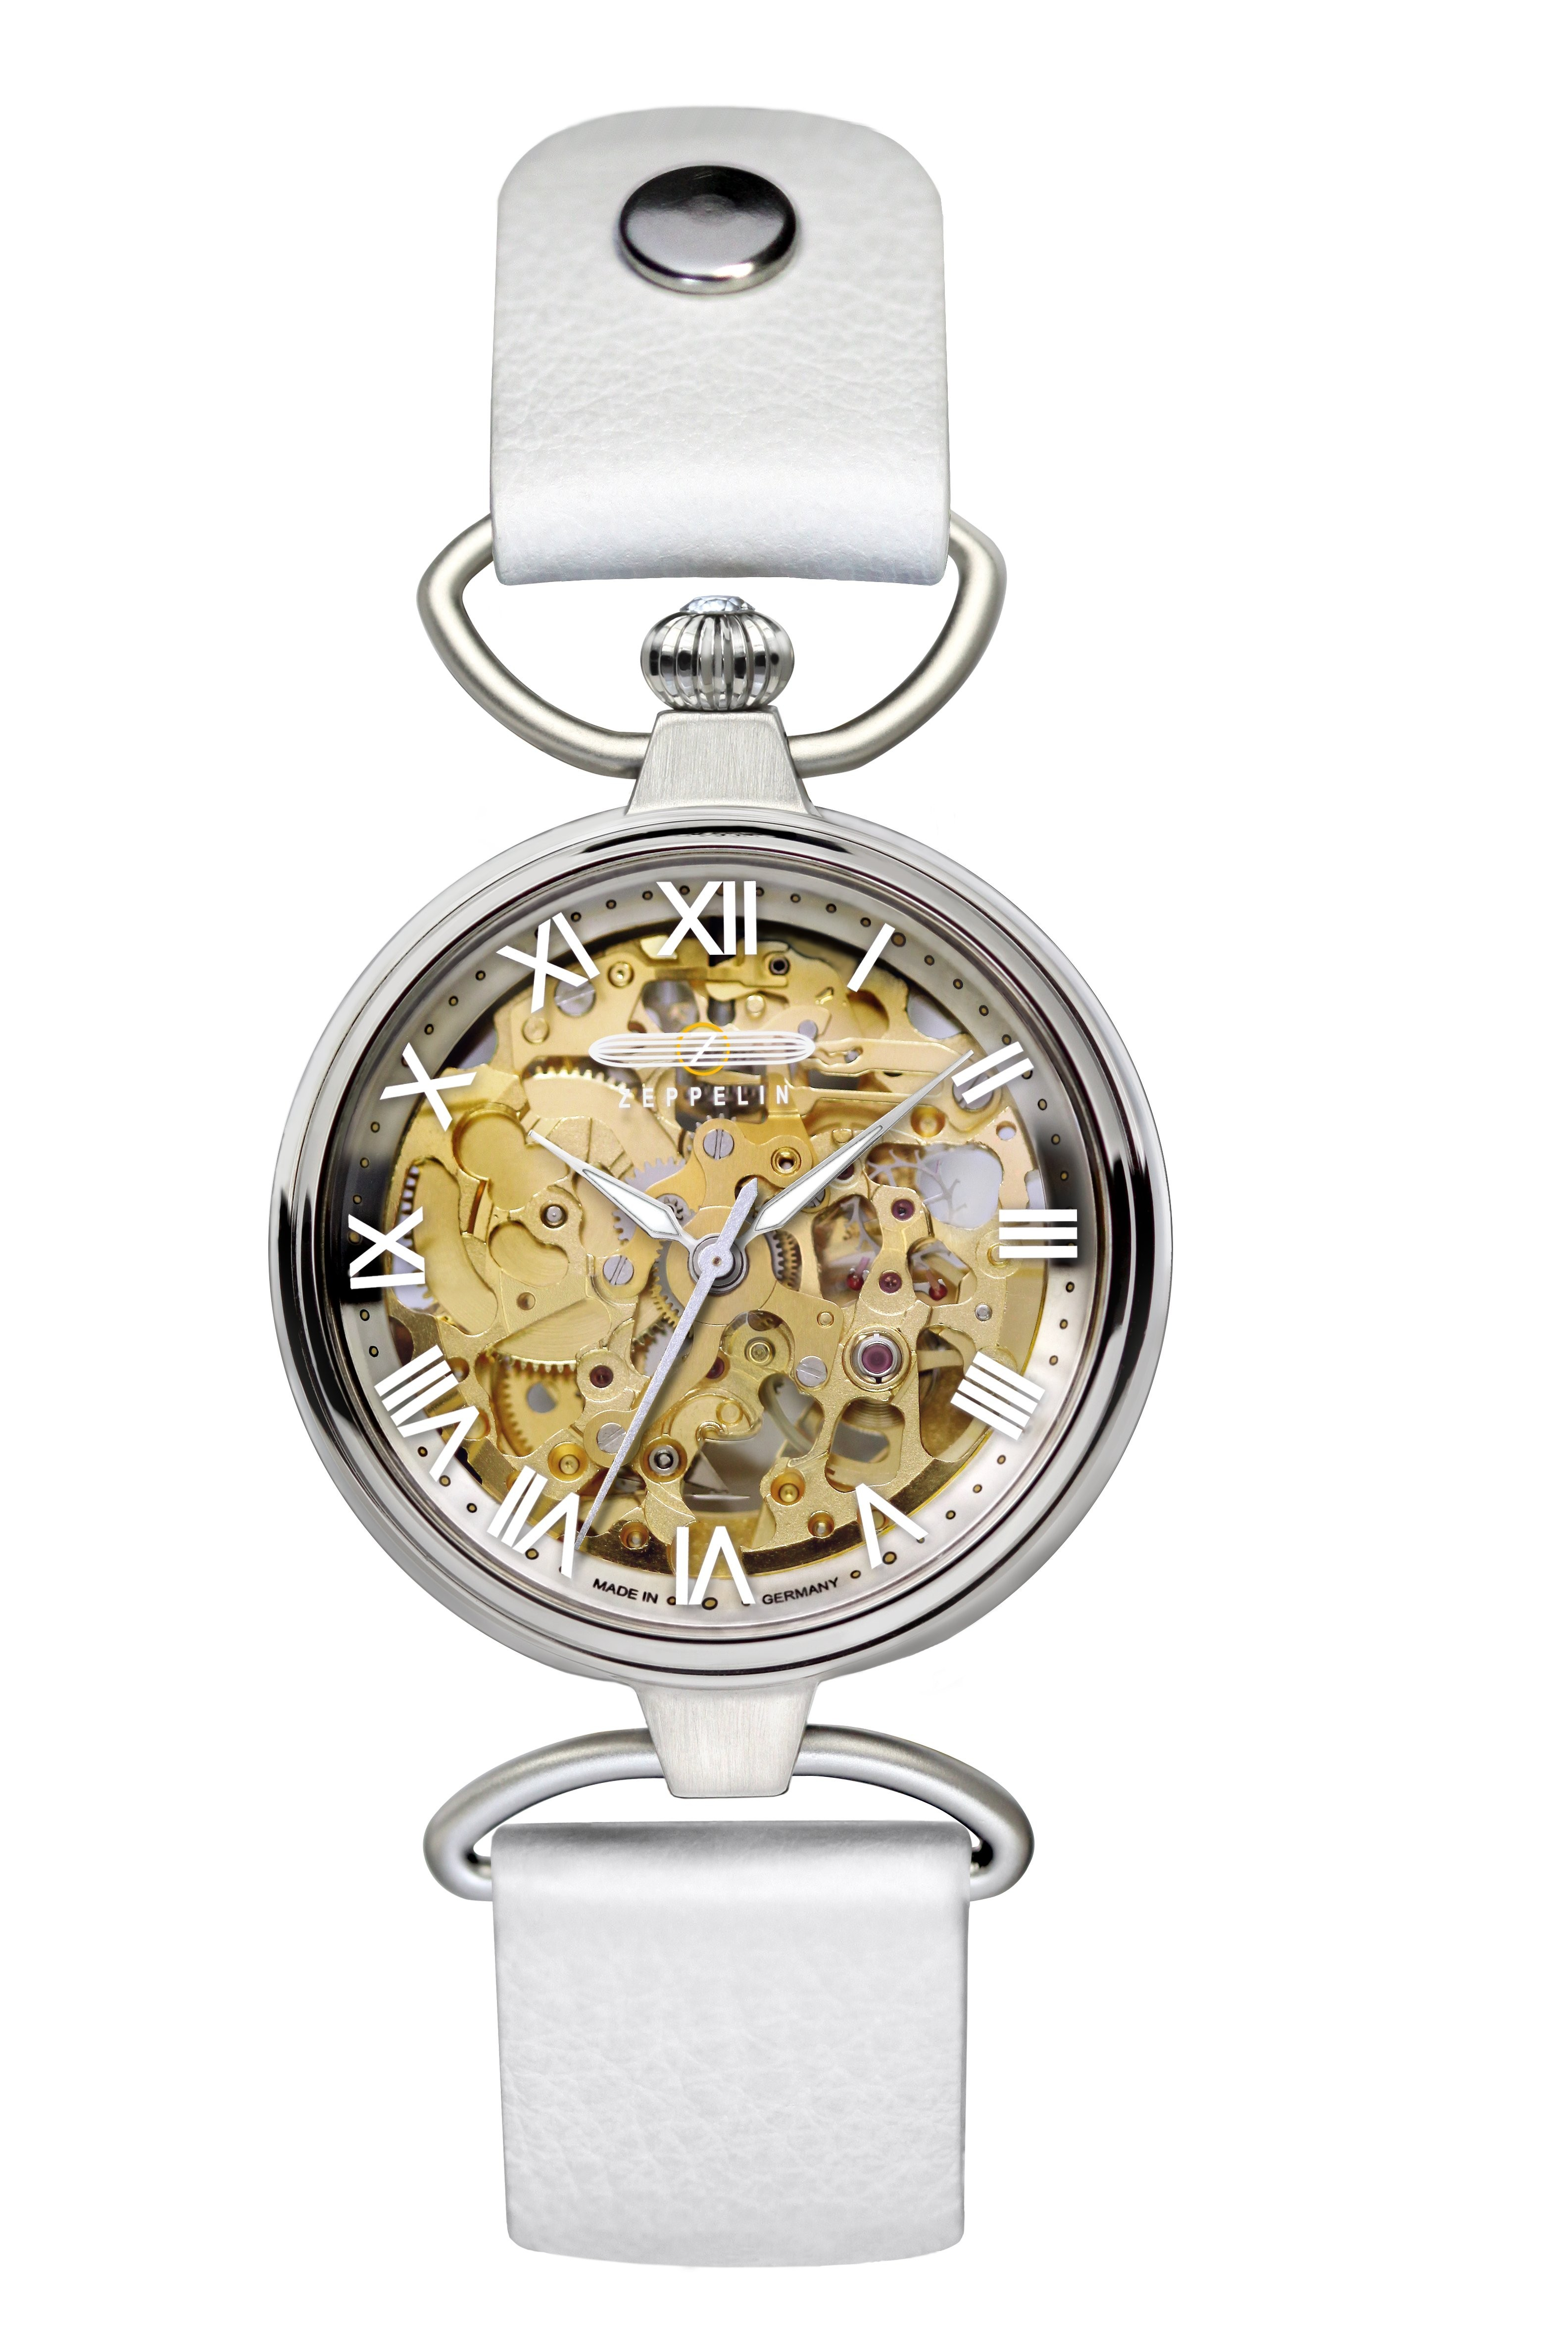 ZEPPELIN PRINCESS OF THE SKY LADIES AUTO SKELETON WATCH 34mm DIAM 5ATM WR 7457-5